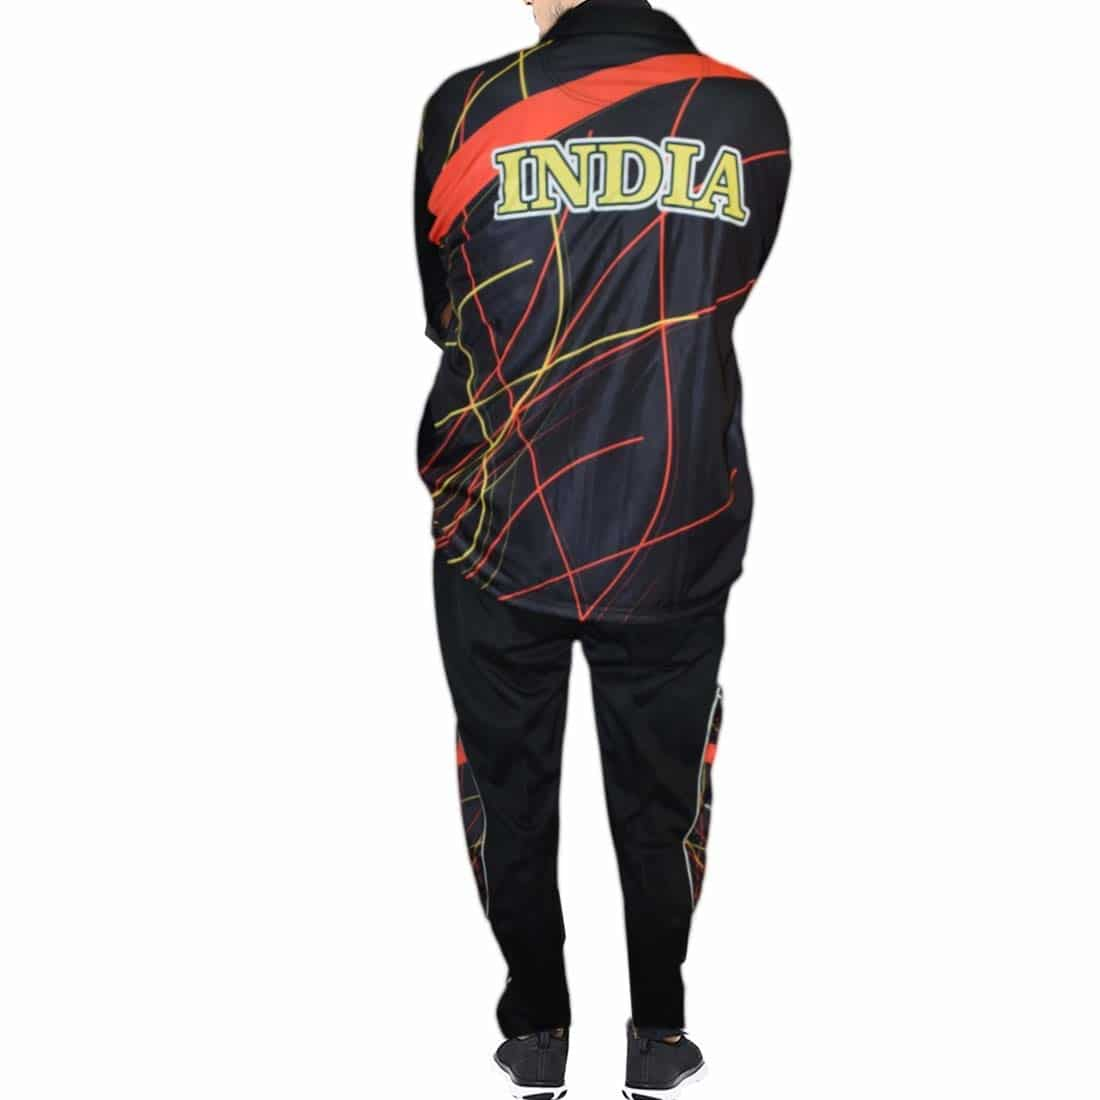 SSR SPORTSsublimation Track Suit 100% POLYESTER Dri Fit Material Digital Printed Design Round Neck Comfortable Regular Fit Elastic waistband   Buy Now :- https://amzn.to/2QO91eJ  #paints #stlylish #cotton #menspaint #comfortable #cottonpaints #stylishpaint #printeddesigns